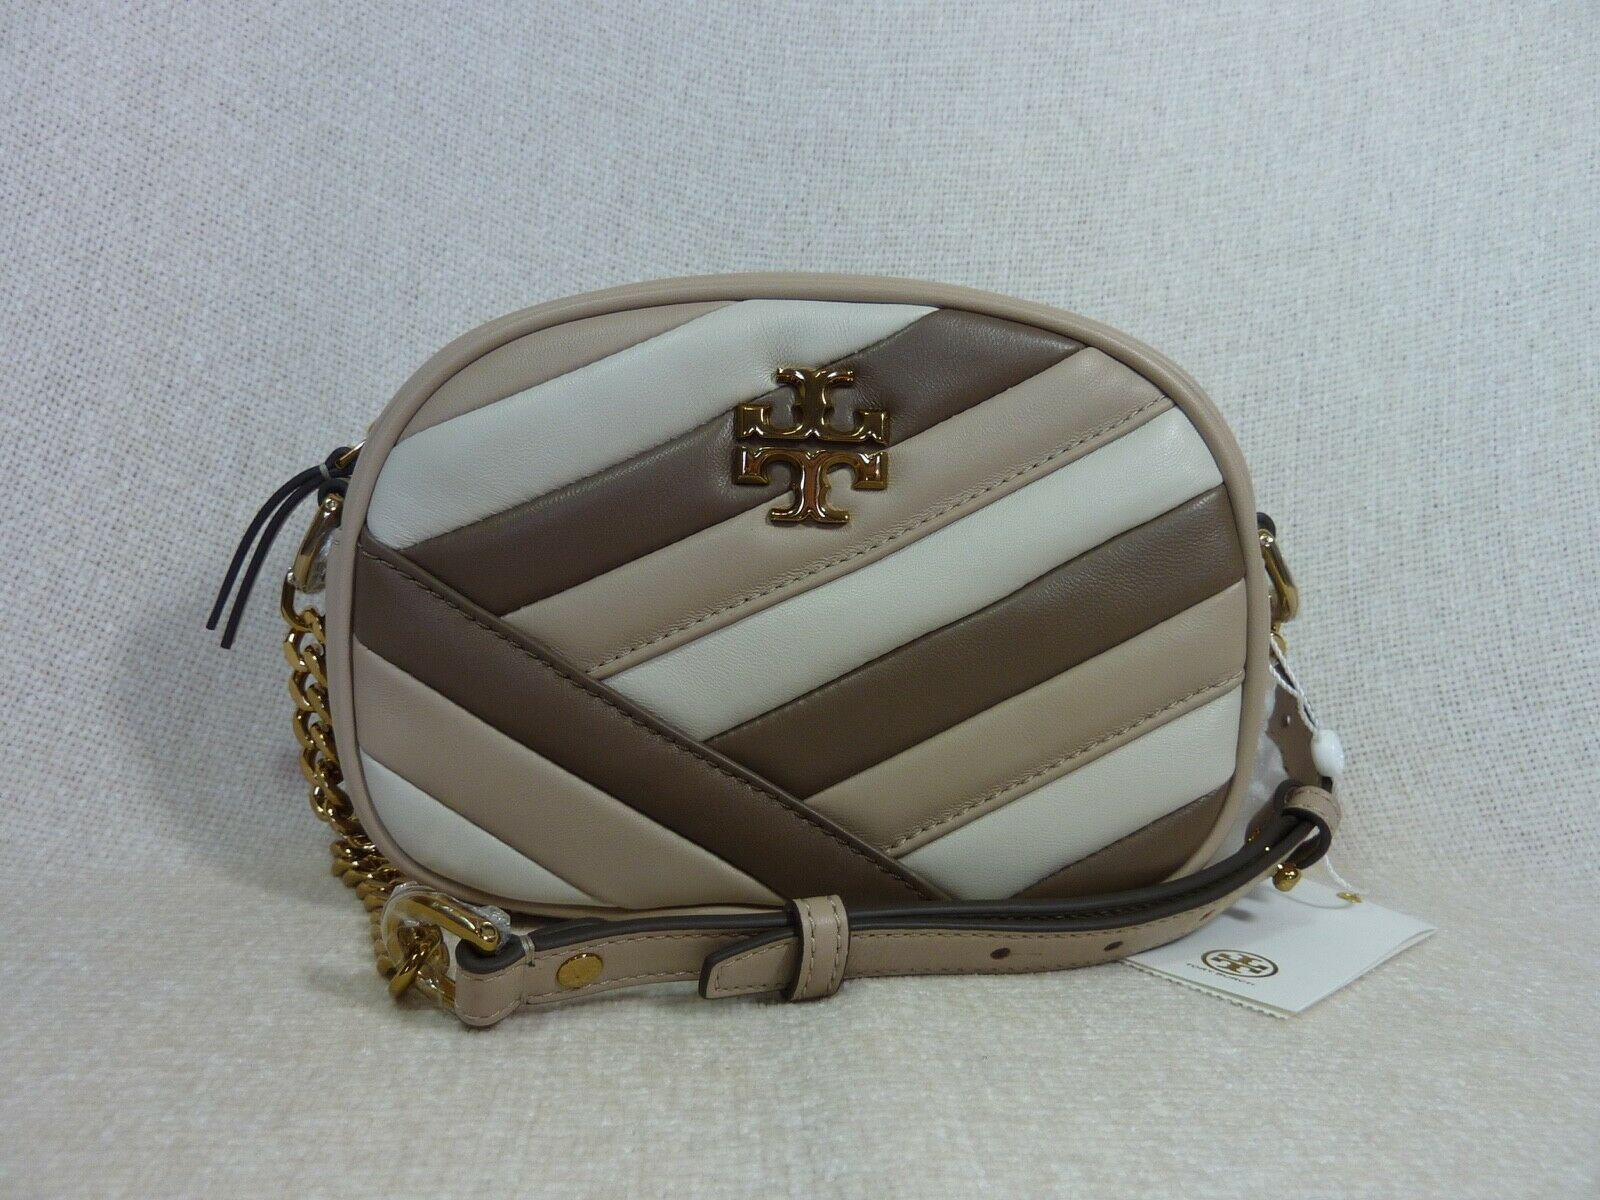 Primary image for NWT Tory Burch Color Block Kira Chevron Small Camera Bag $398